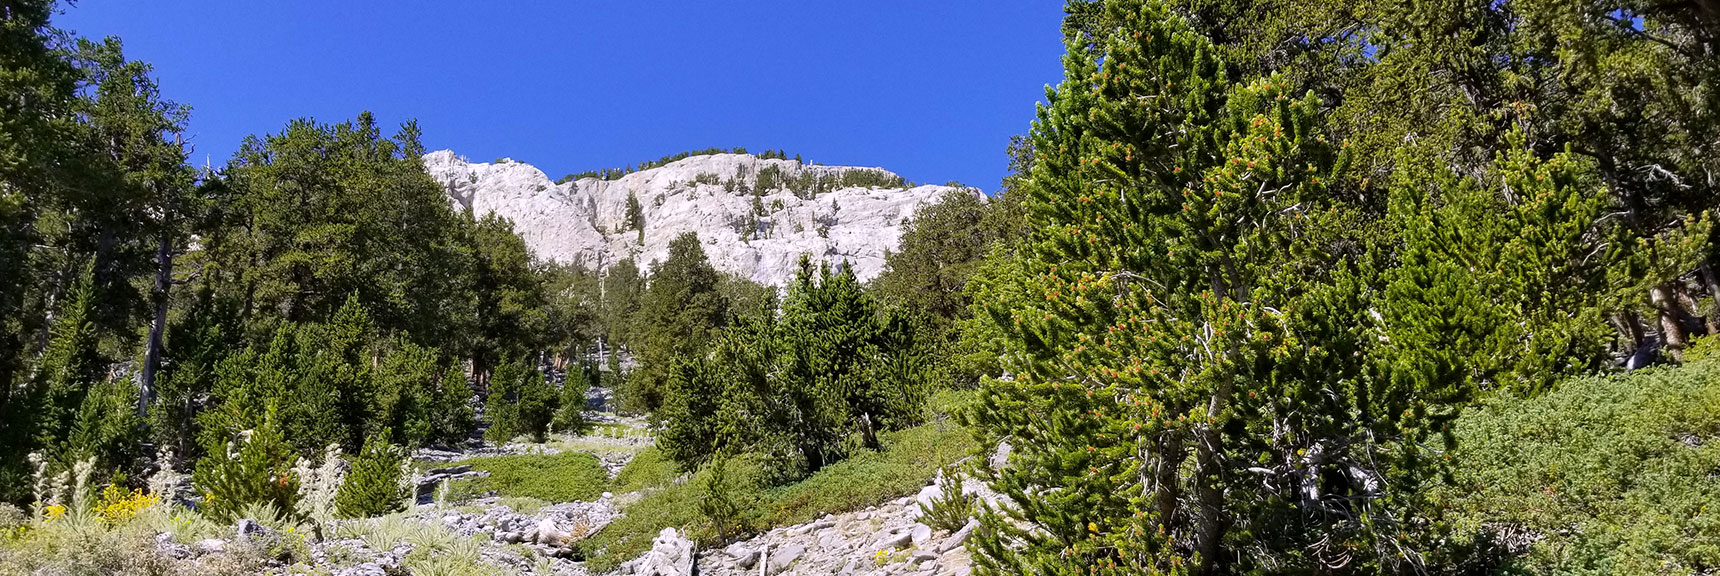 Looking Up the Delta Wash Canyon Toward Mummy Mt. East Summit Approach in Mt. Charleston Wilderness, Nevada